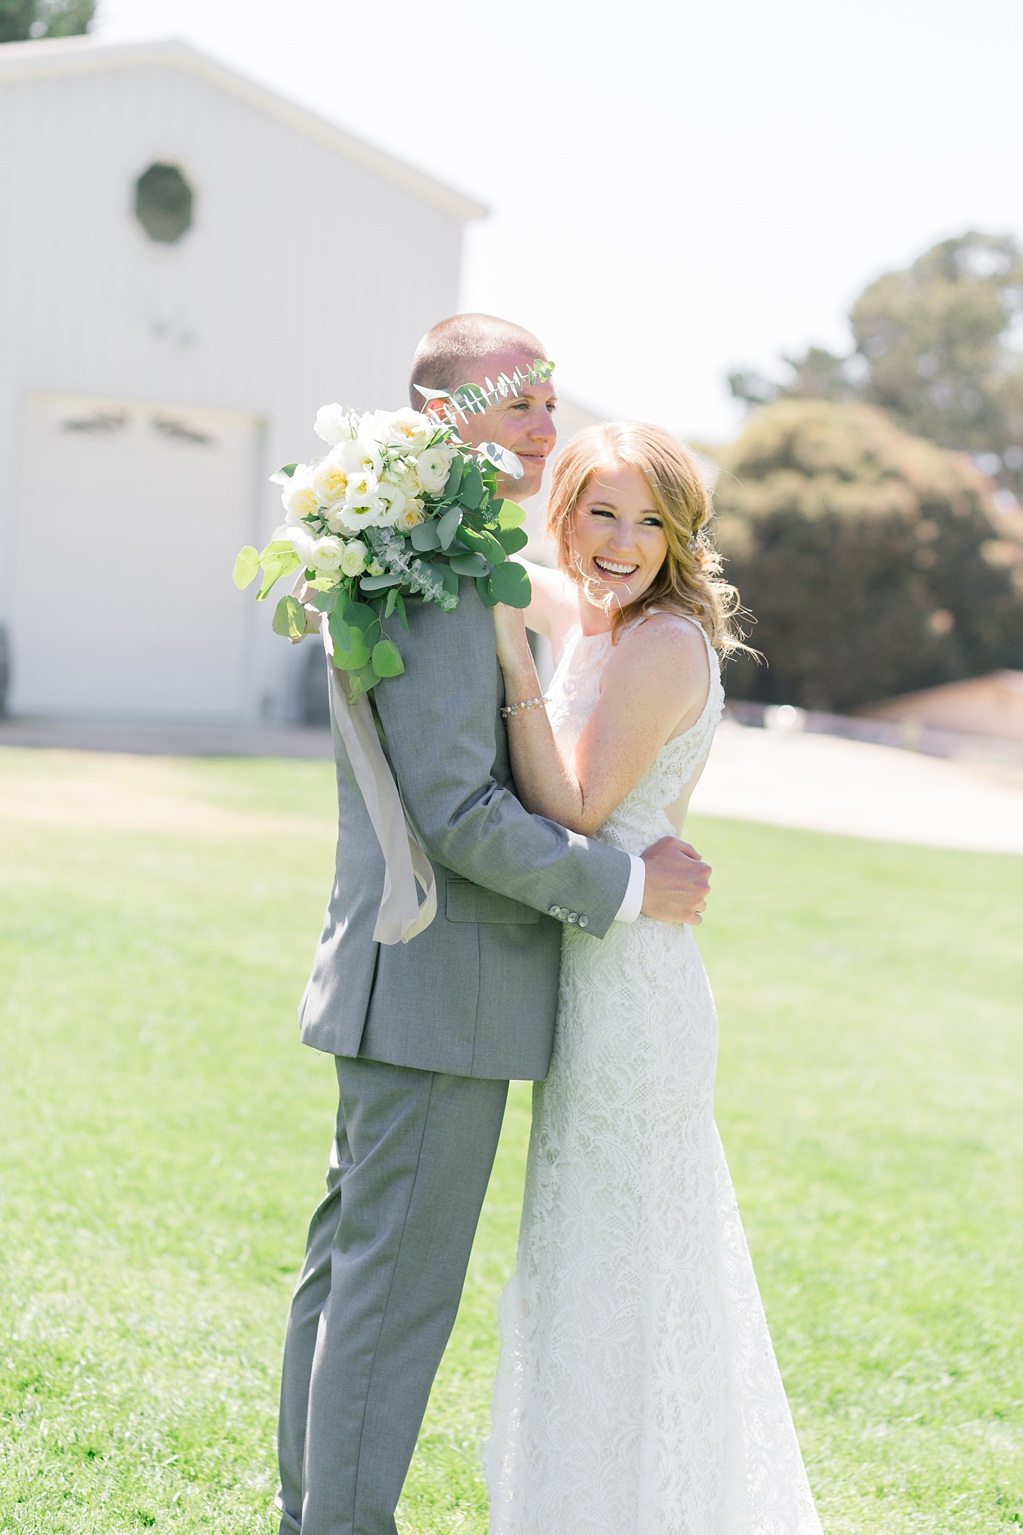 White Barn Inspired Summer Wedding In The Valley of Arroyo Grande, California by Wedding Photographer Madison Ellis (38)